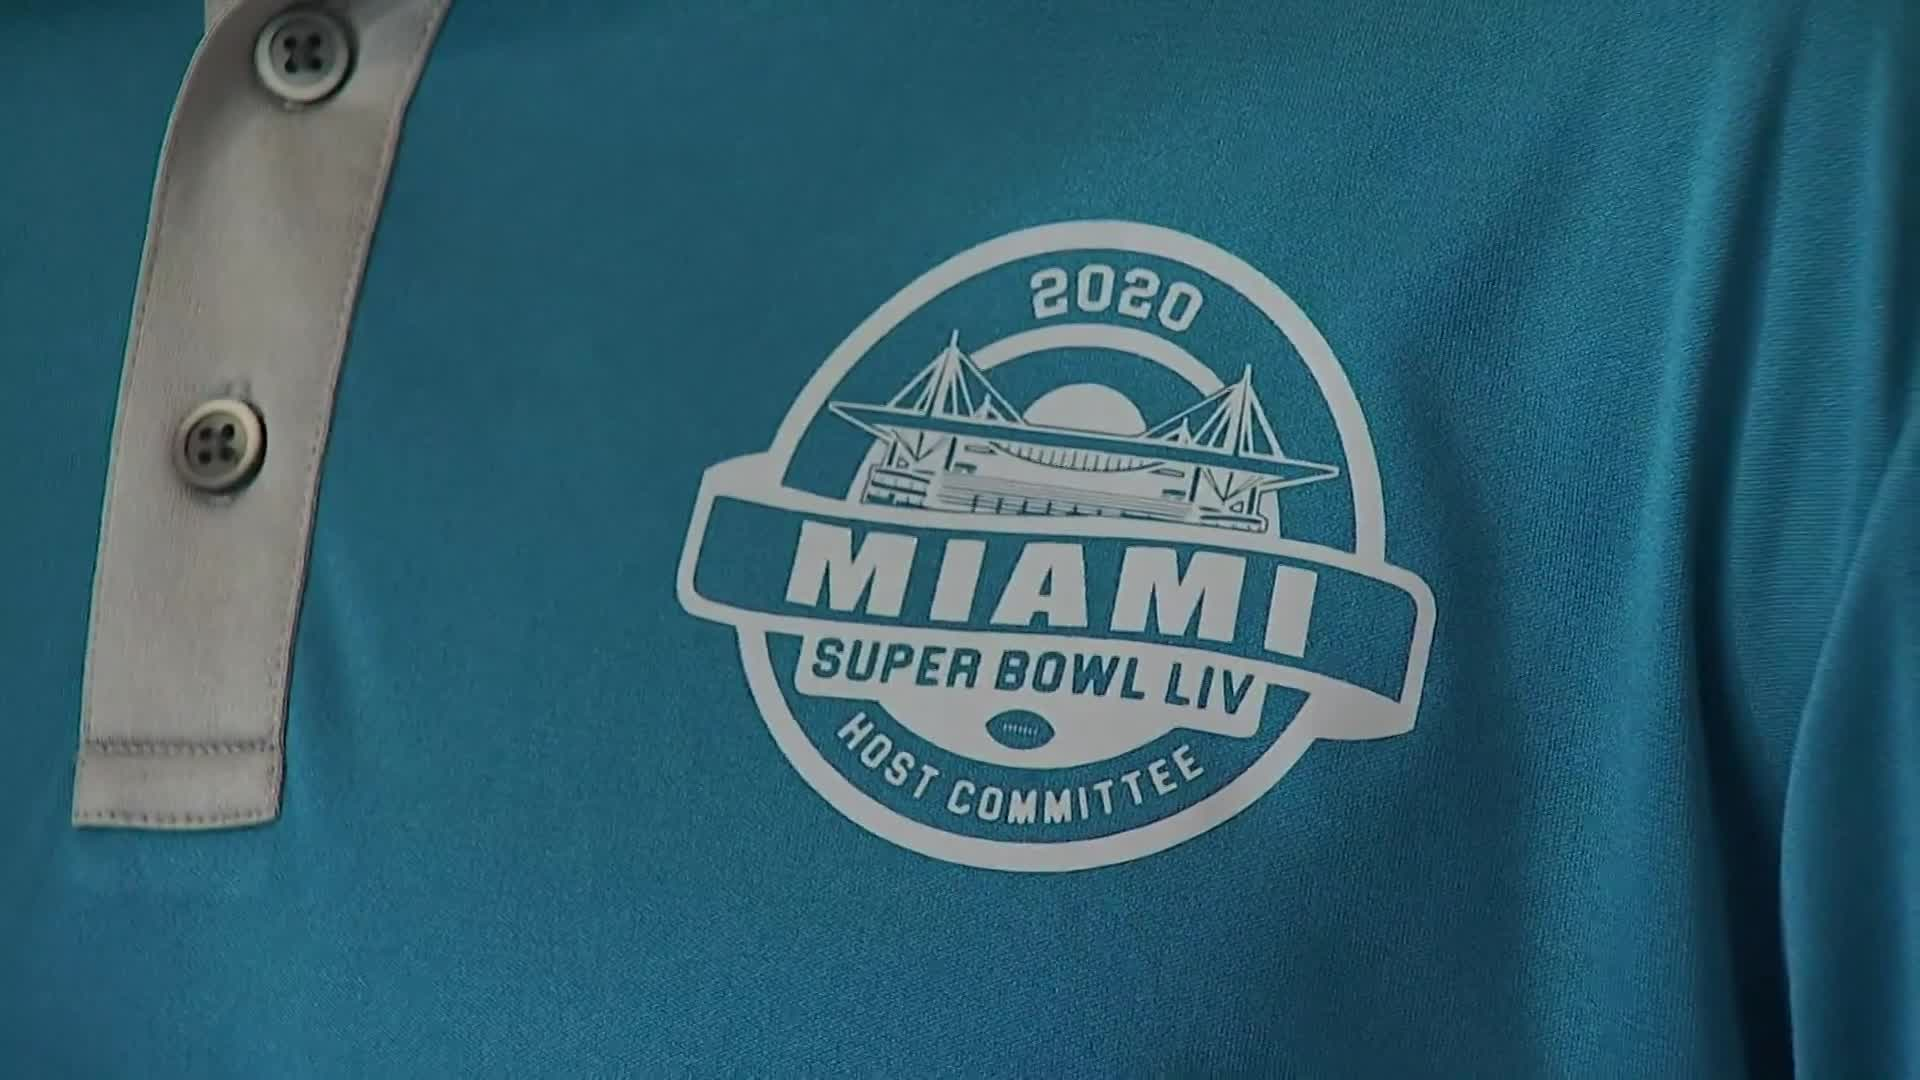 Officials looking for Super Bowl 2020 volunteers WFLA 1920x1080